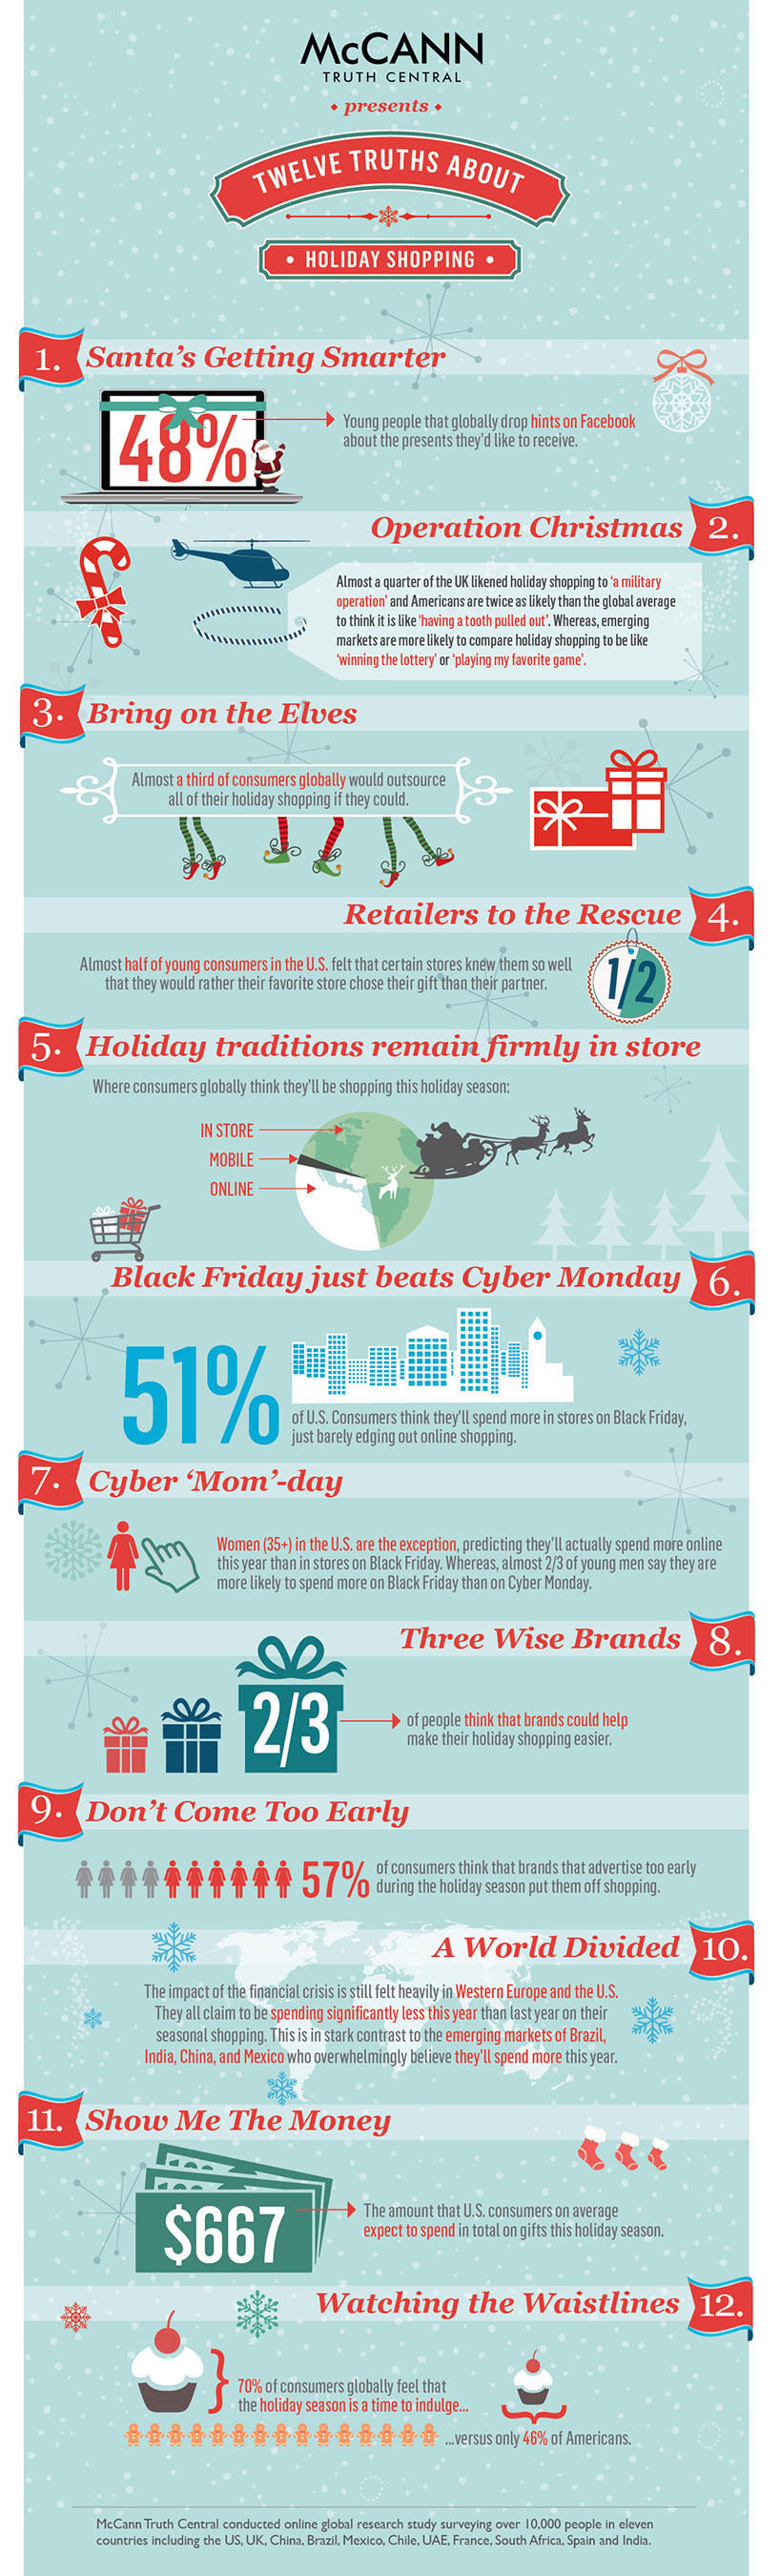 McCann's 12 Truths About Holiday Shopping.  (PRNewsFoto/McCann Erickson)